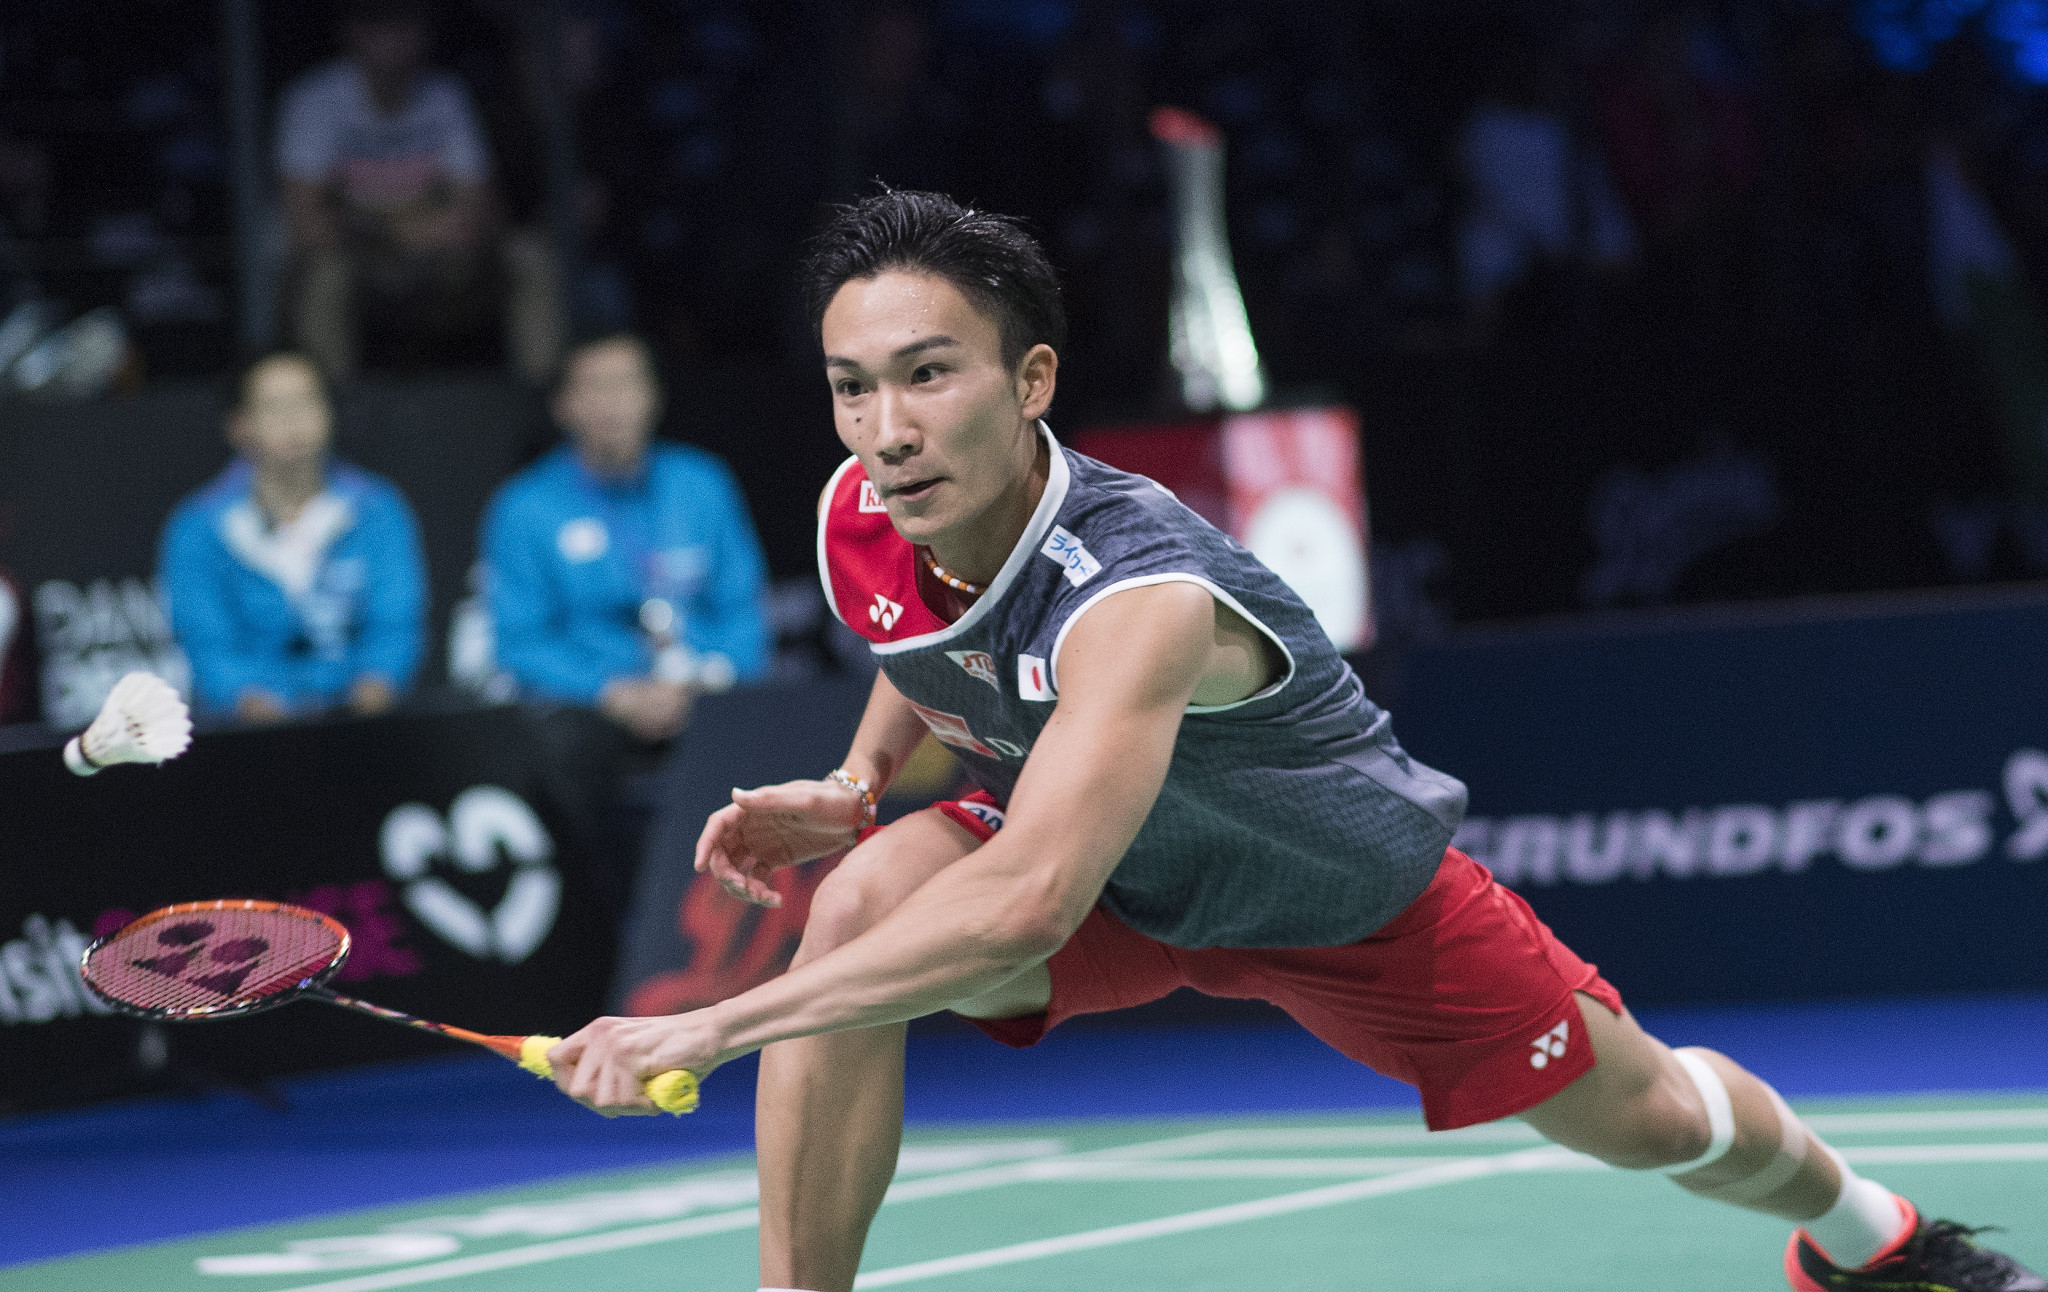 Kento Momota continued his bid for a second straight title ©Getty Images